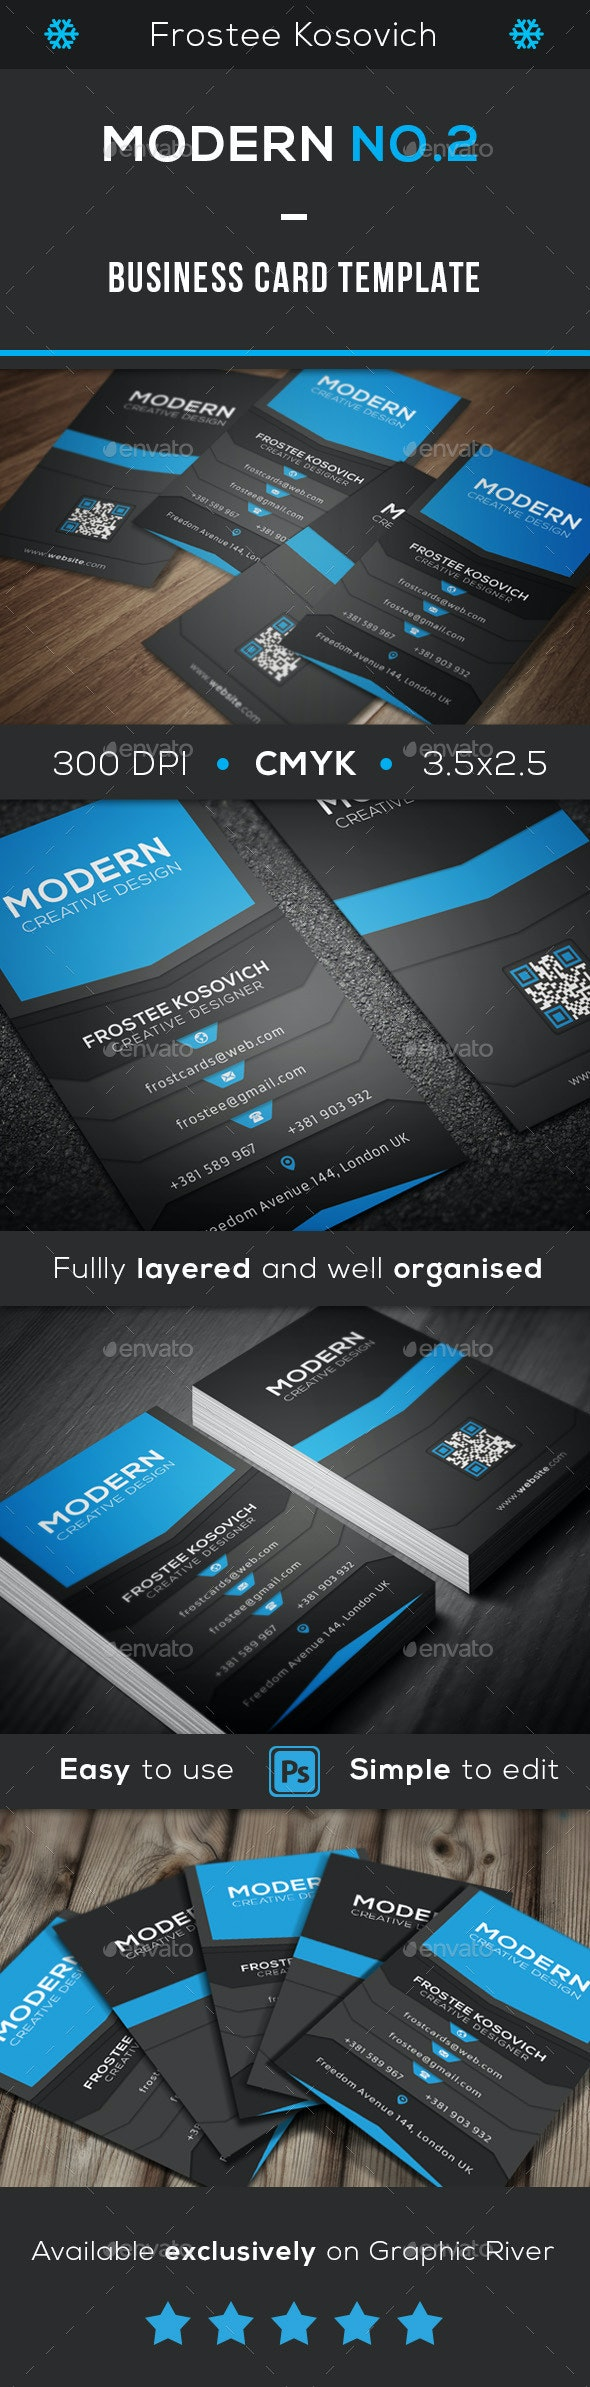 Modern Business Card Template No.2 - Creative Business Cards